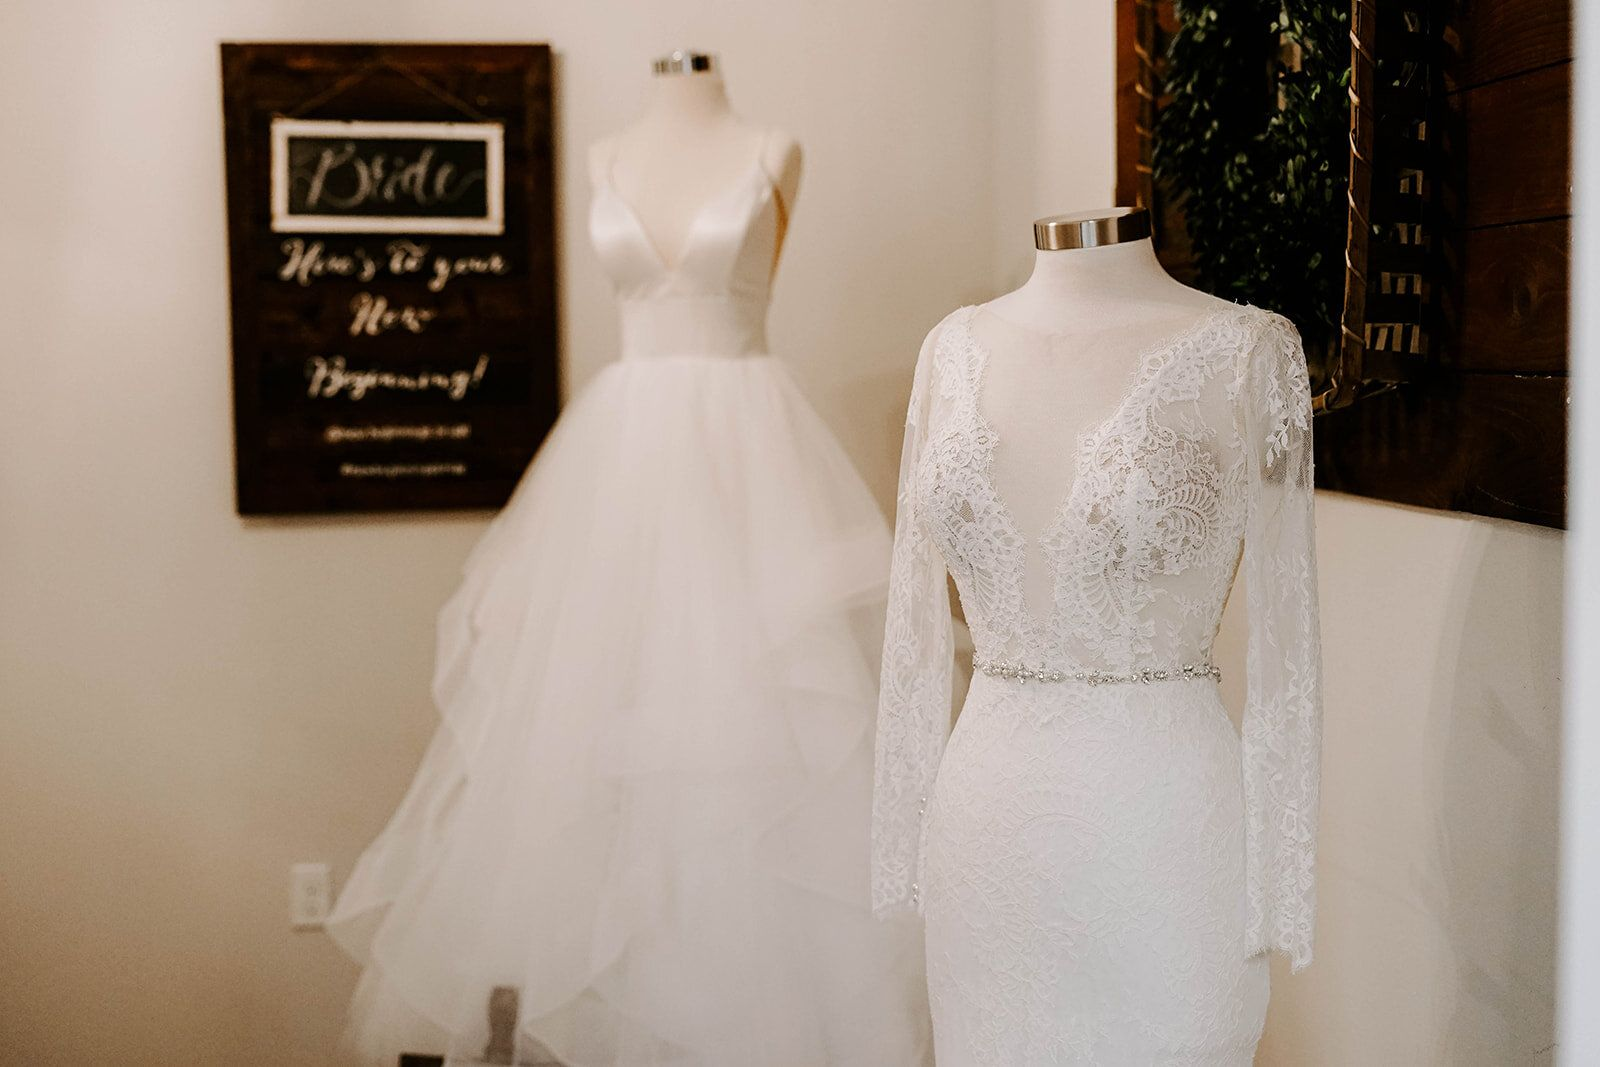 What Is A Sample Sale New Beginnings Bridal Studio In 2020 Bridal Wedding Dresses For Sale Bridal Boutique